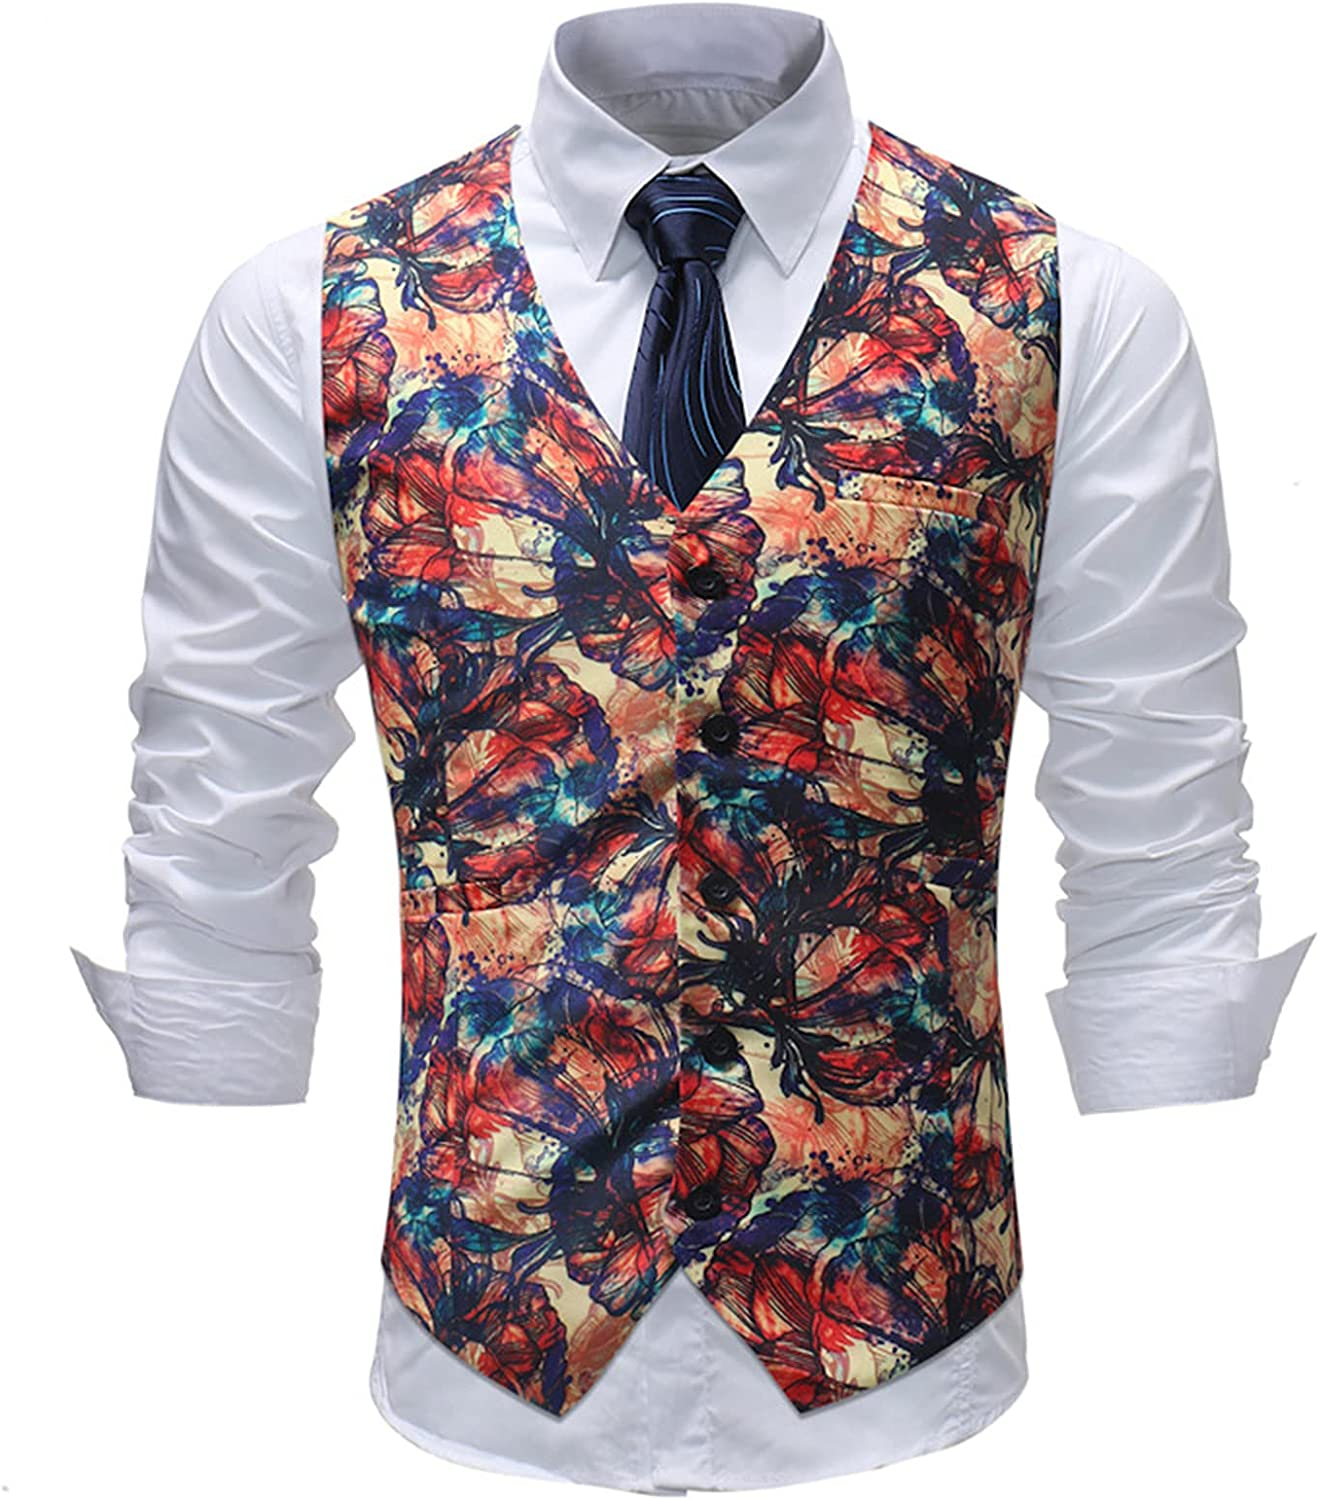 Men's Floral Jacquard Waistcoats Formal Classic Plaid Waistcoat Wedding Casual Party Business Fit Suit Vest with Pockets